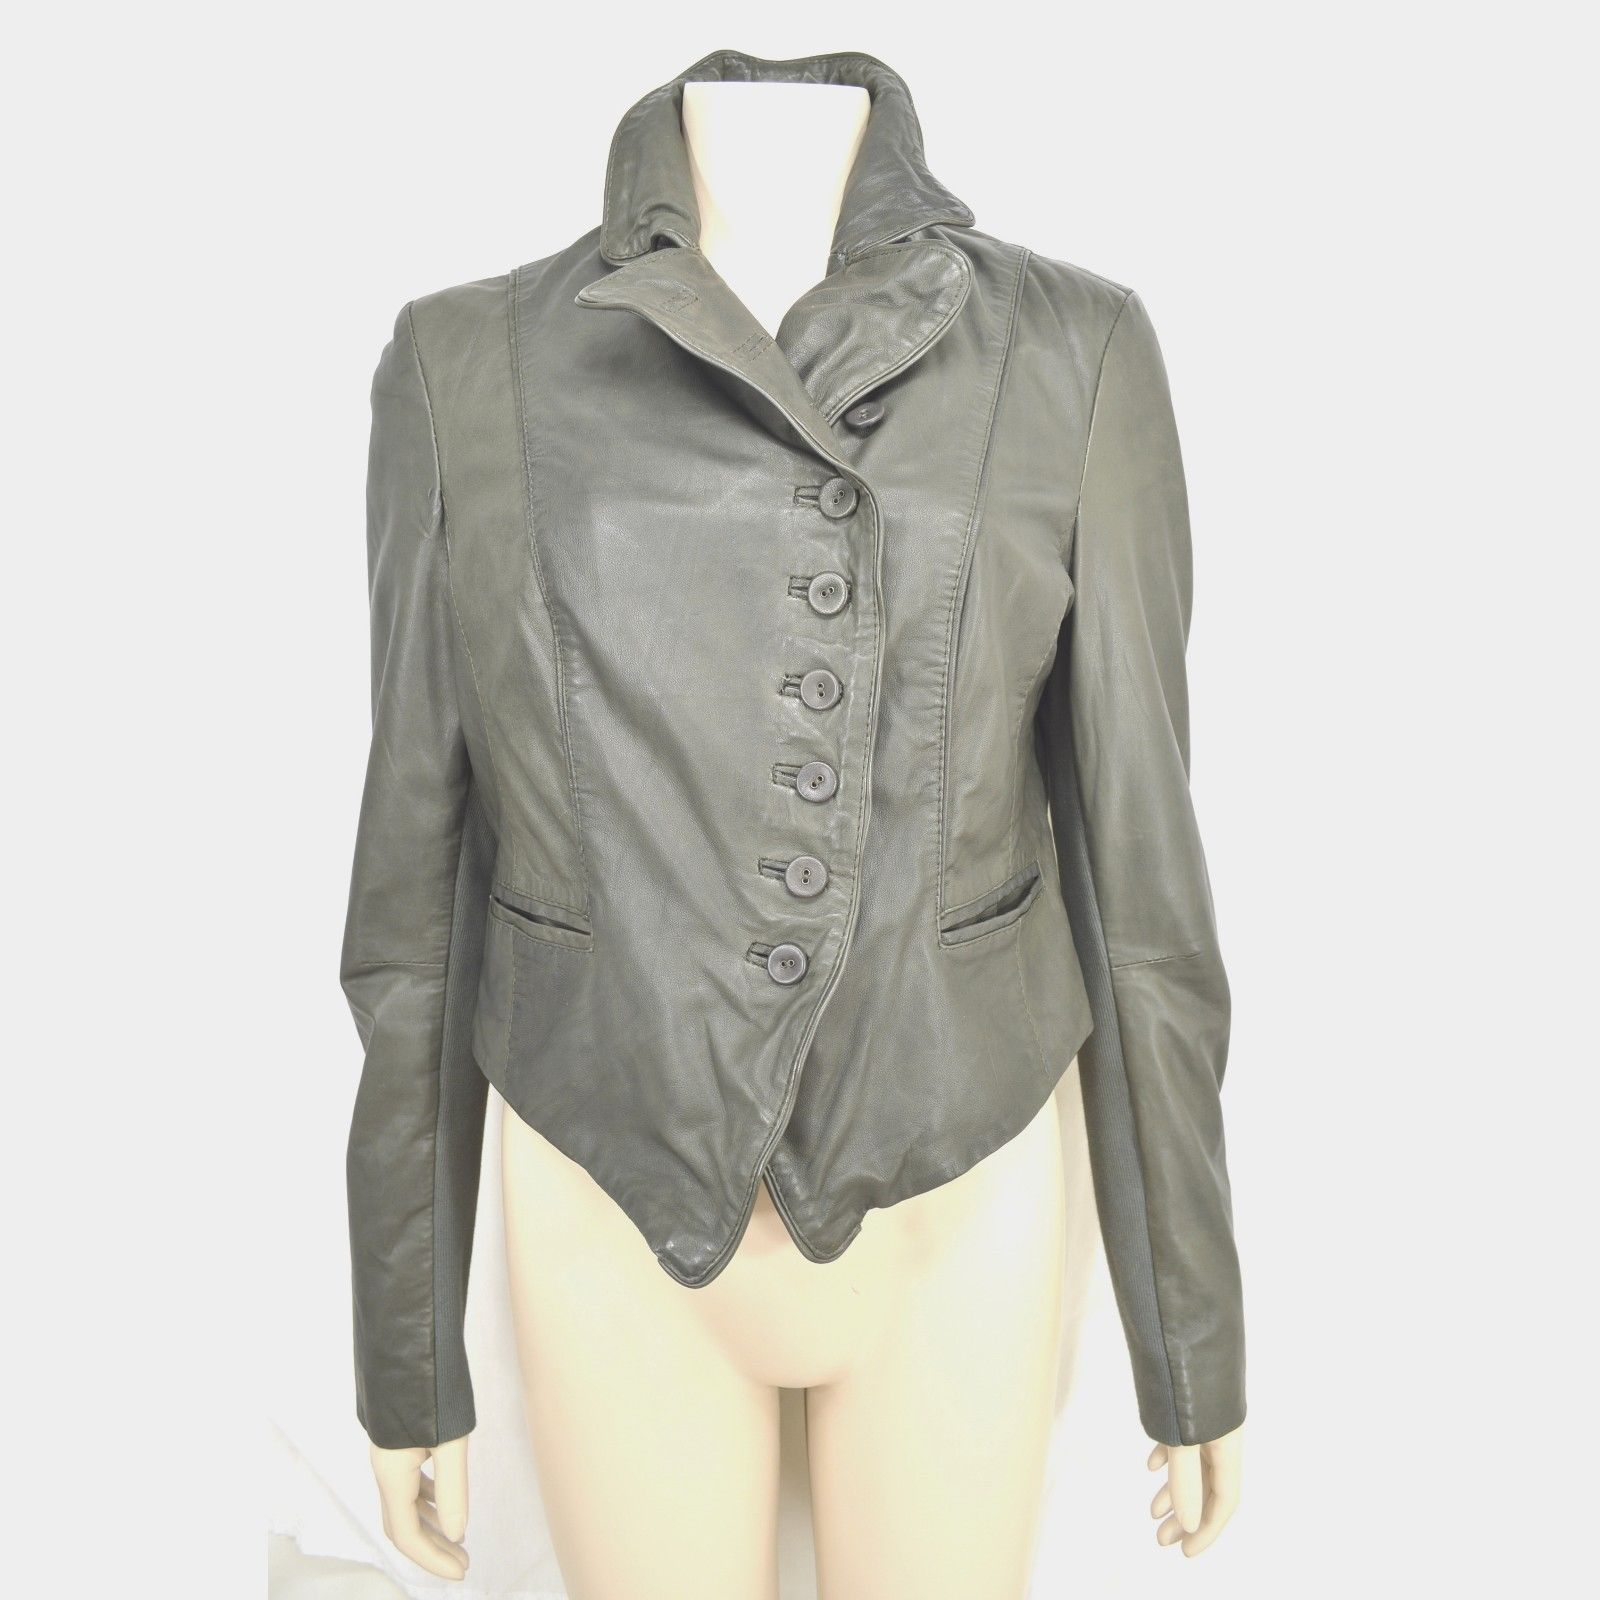 MUUBAA lambskin soft leather jacket SZ 8 Moss Army Gray asymmetric buttoned image 3